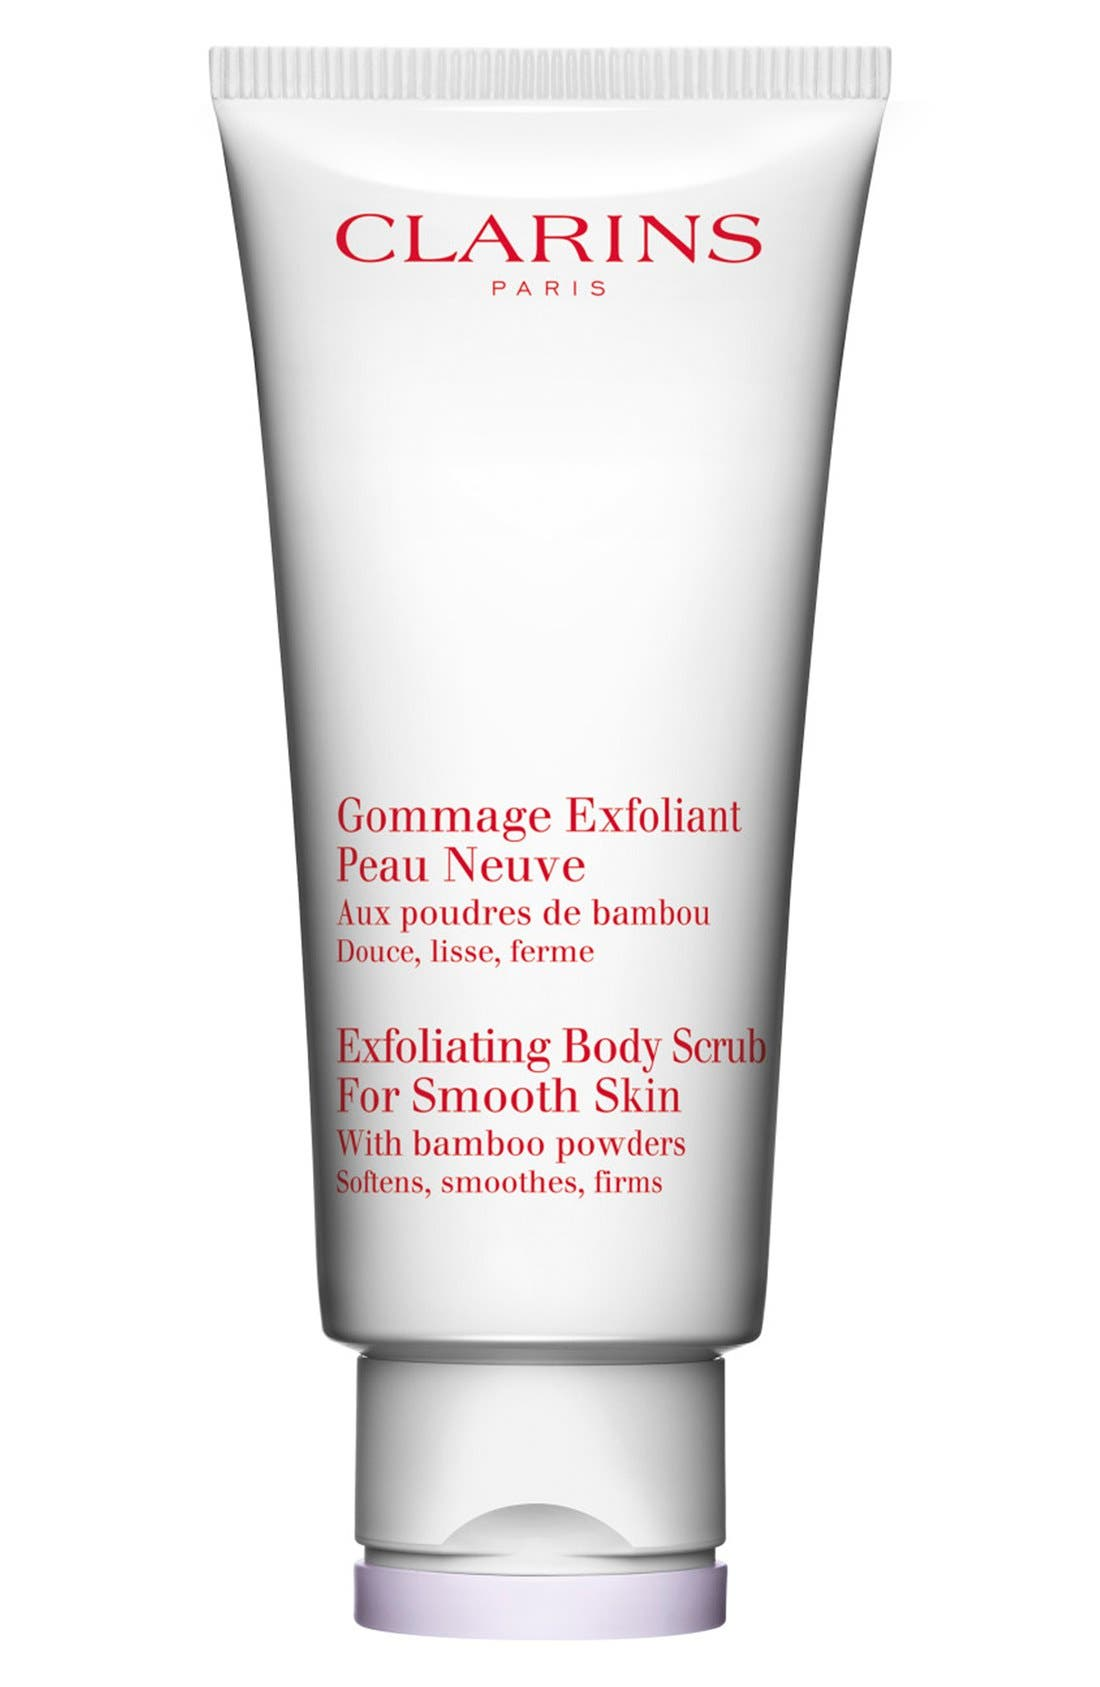 Clarins Exfoliating Body Scrub for Smooth Skin